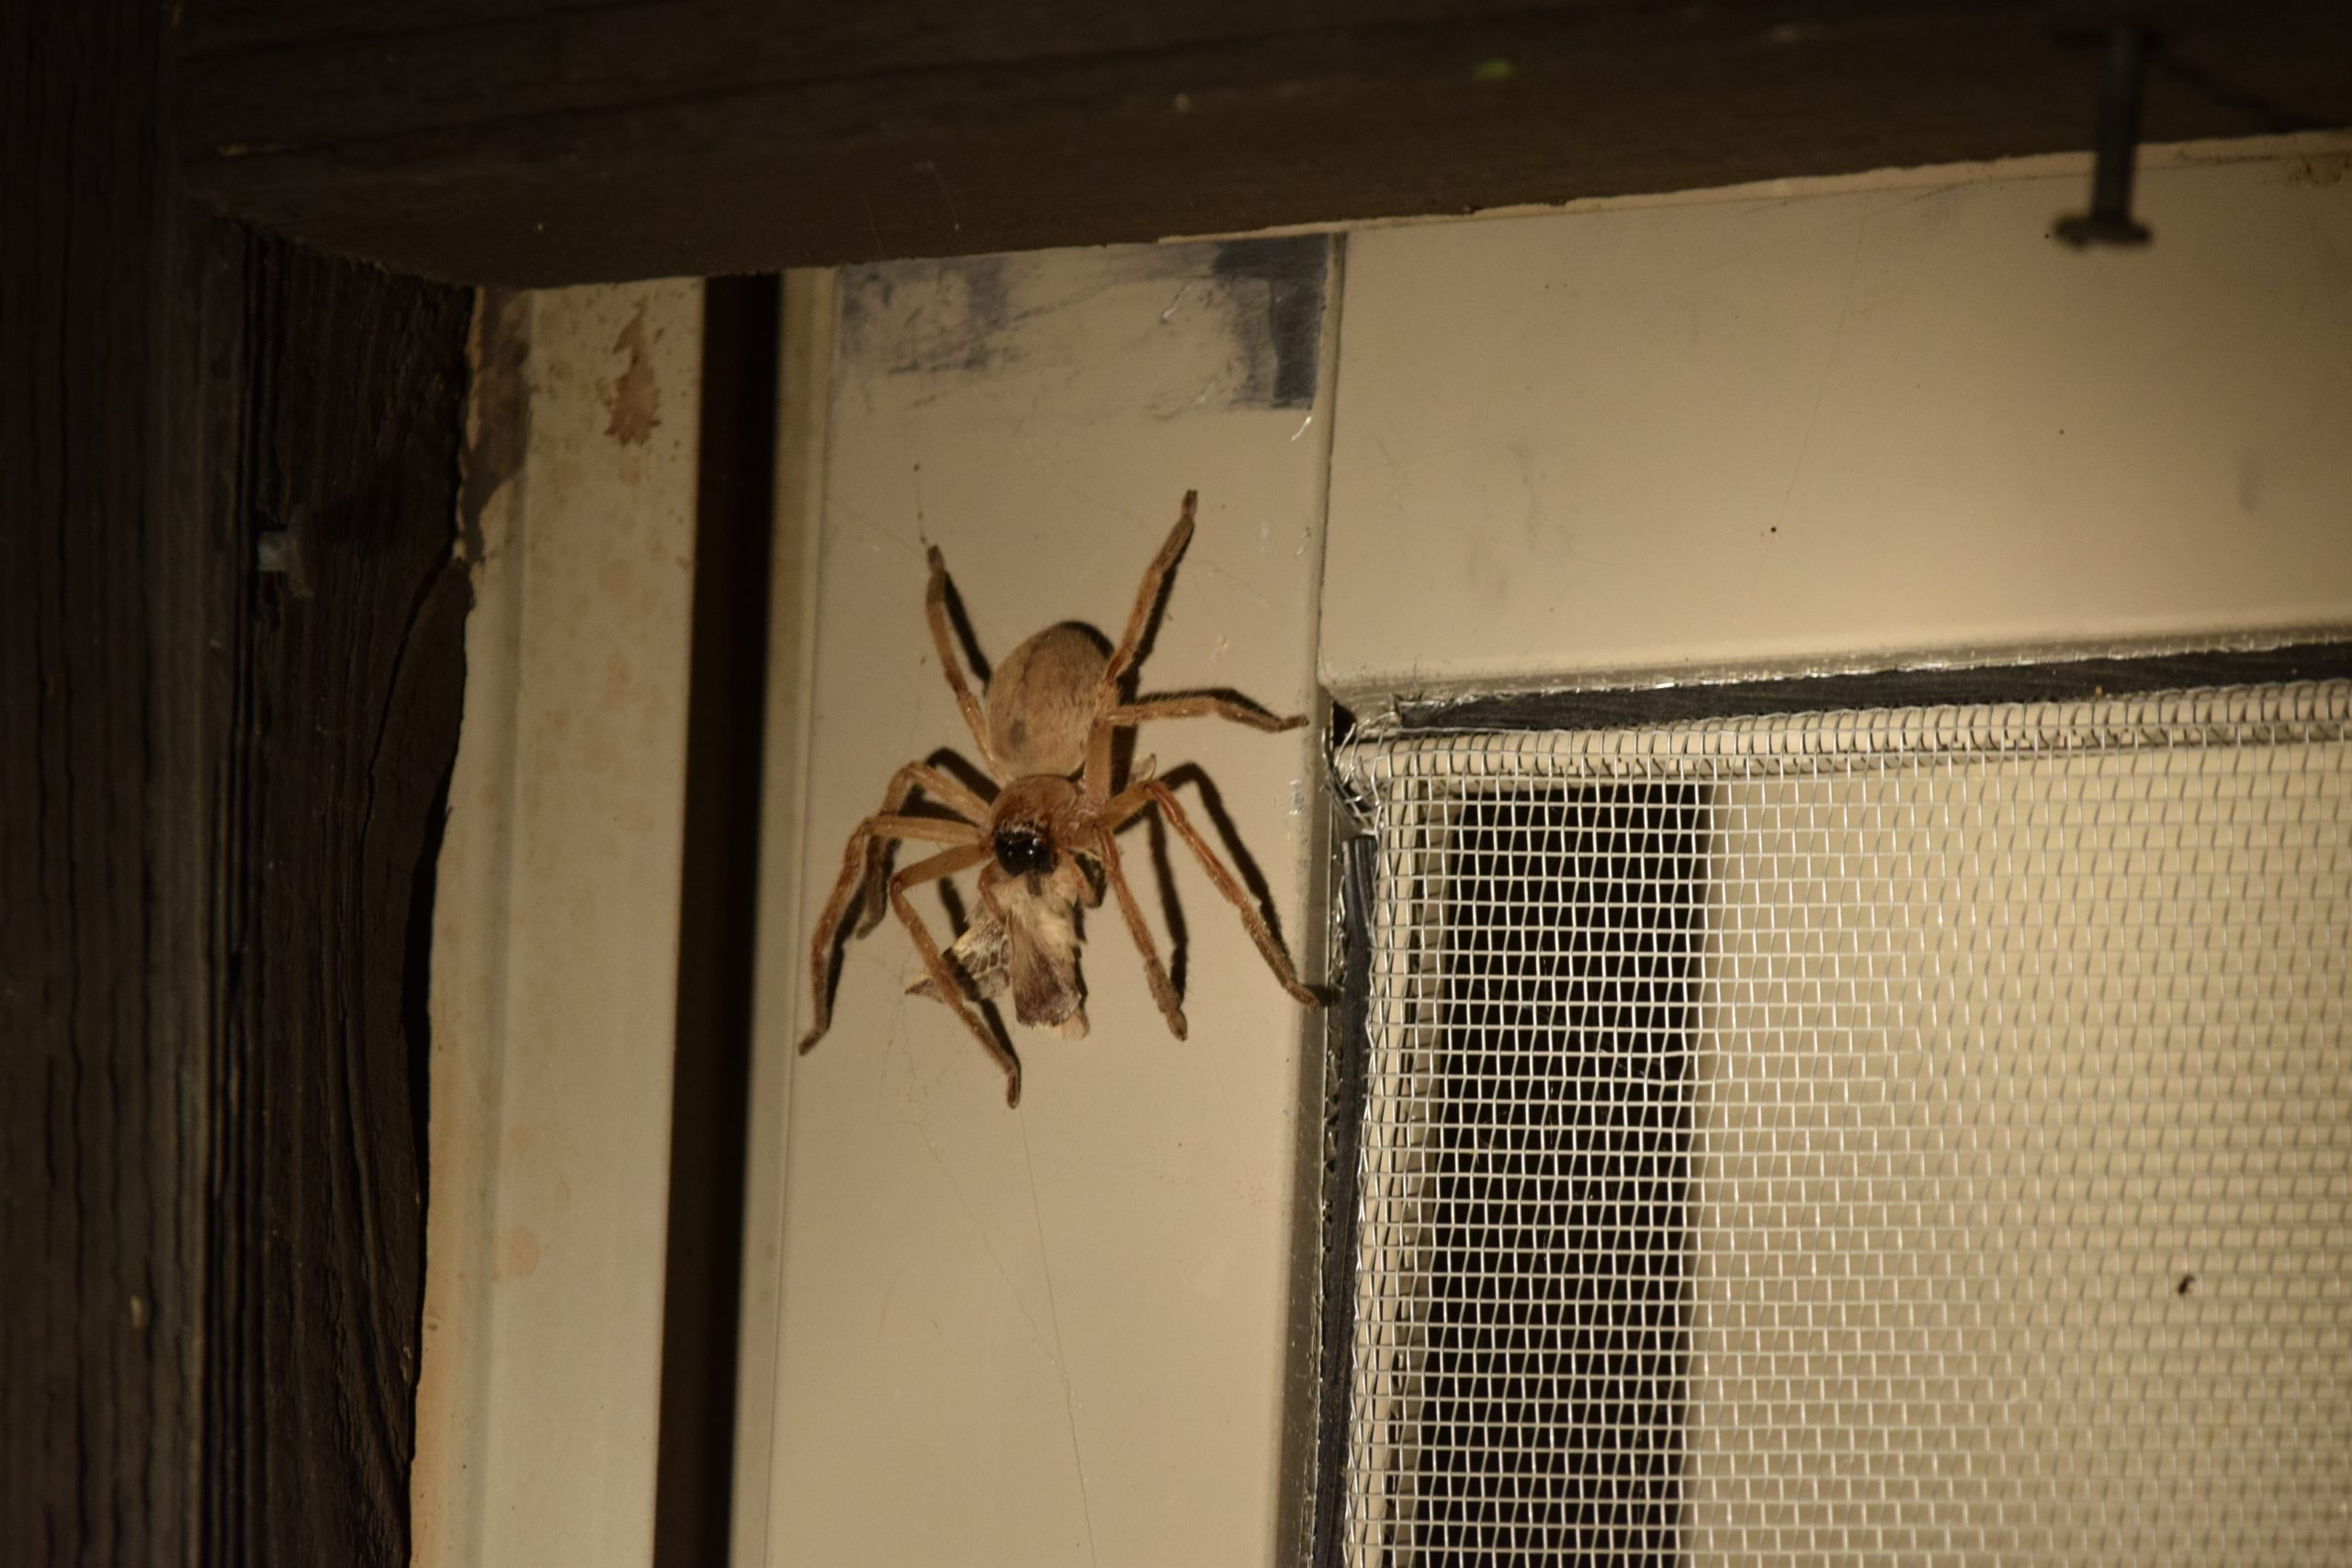 Giant Crab Spider, Olios giganteus, eating a moth, photo by Malory Owen